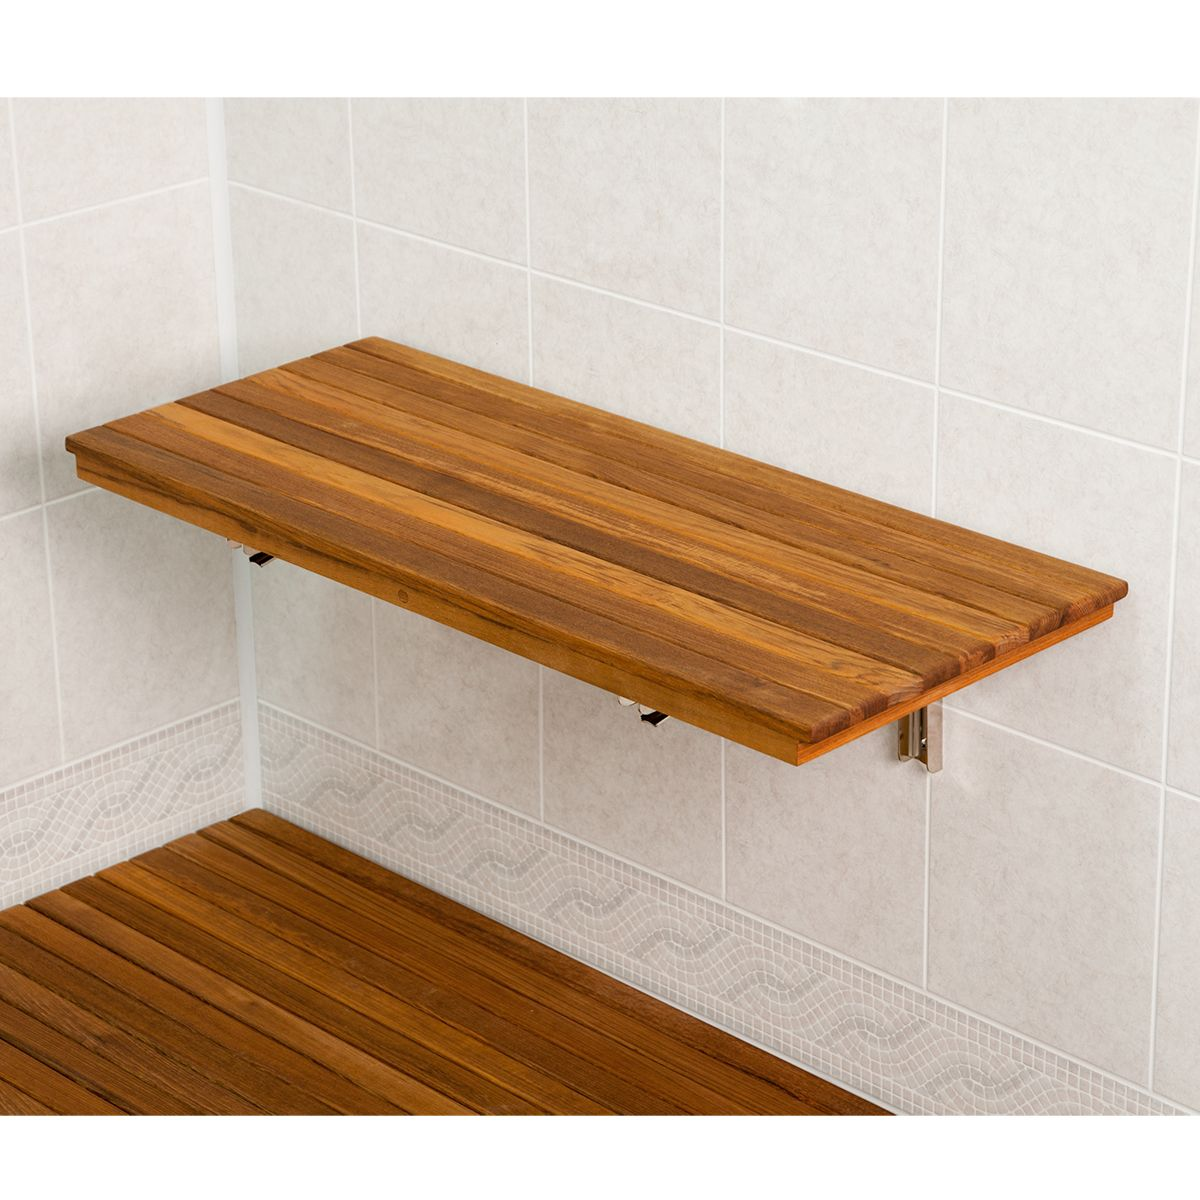 30 wide teak ada wall mount shower bench seat shower benches teak and wall mount 30 bench